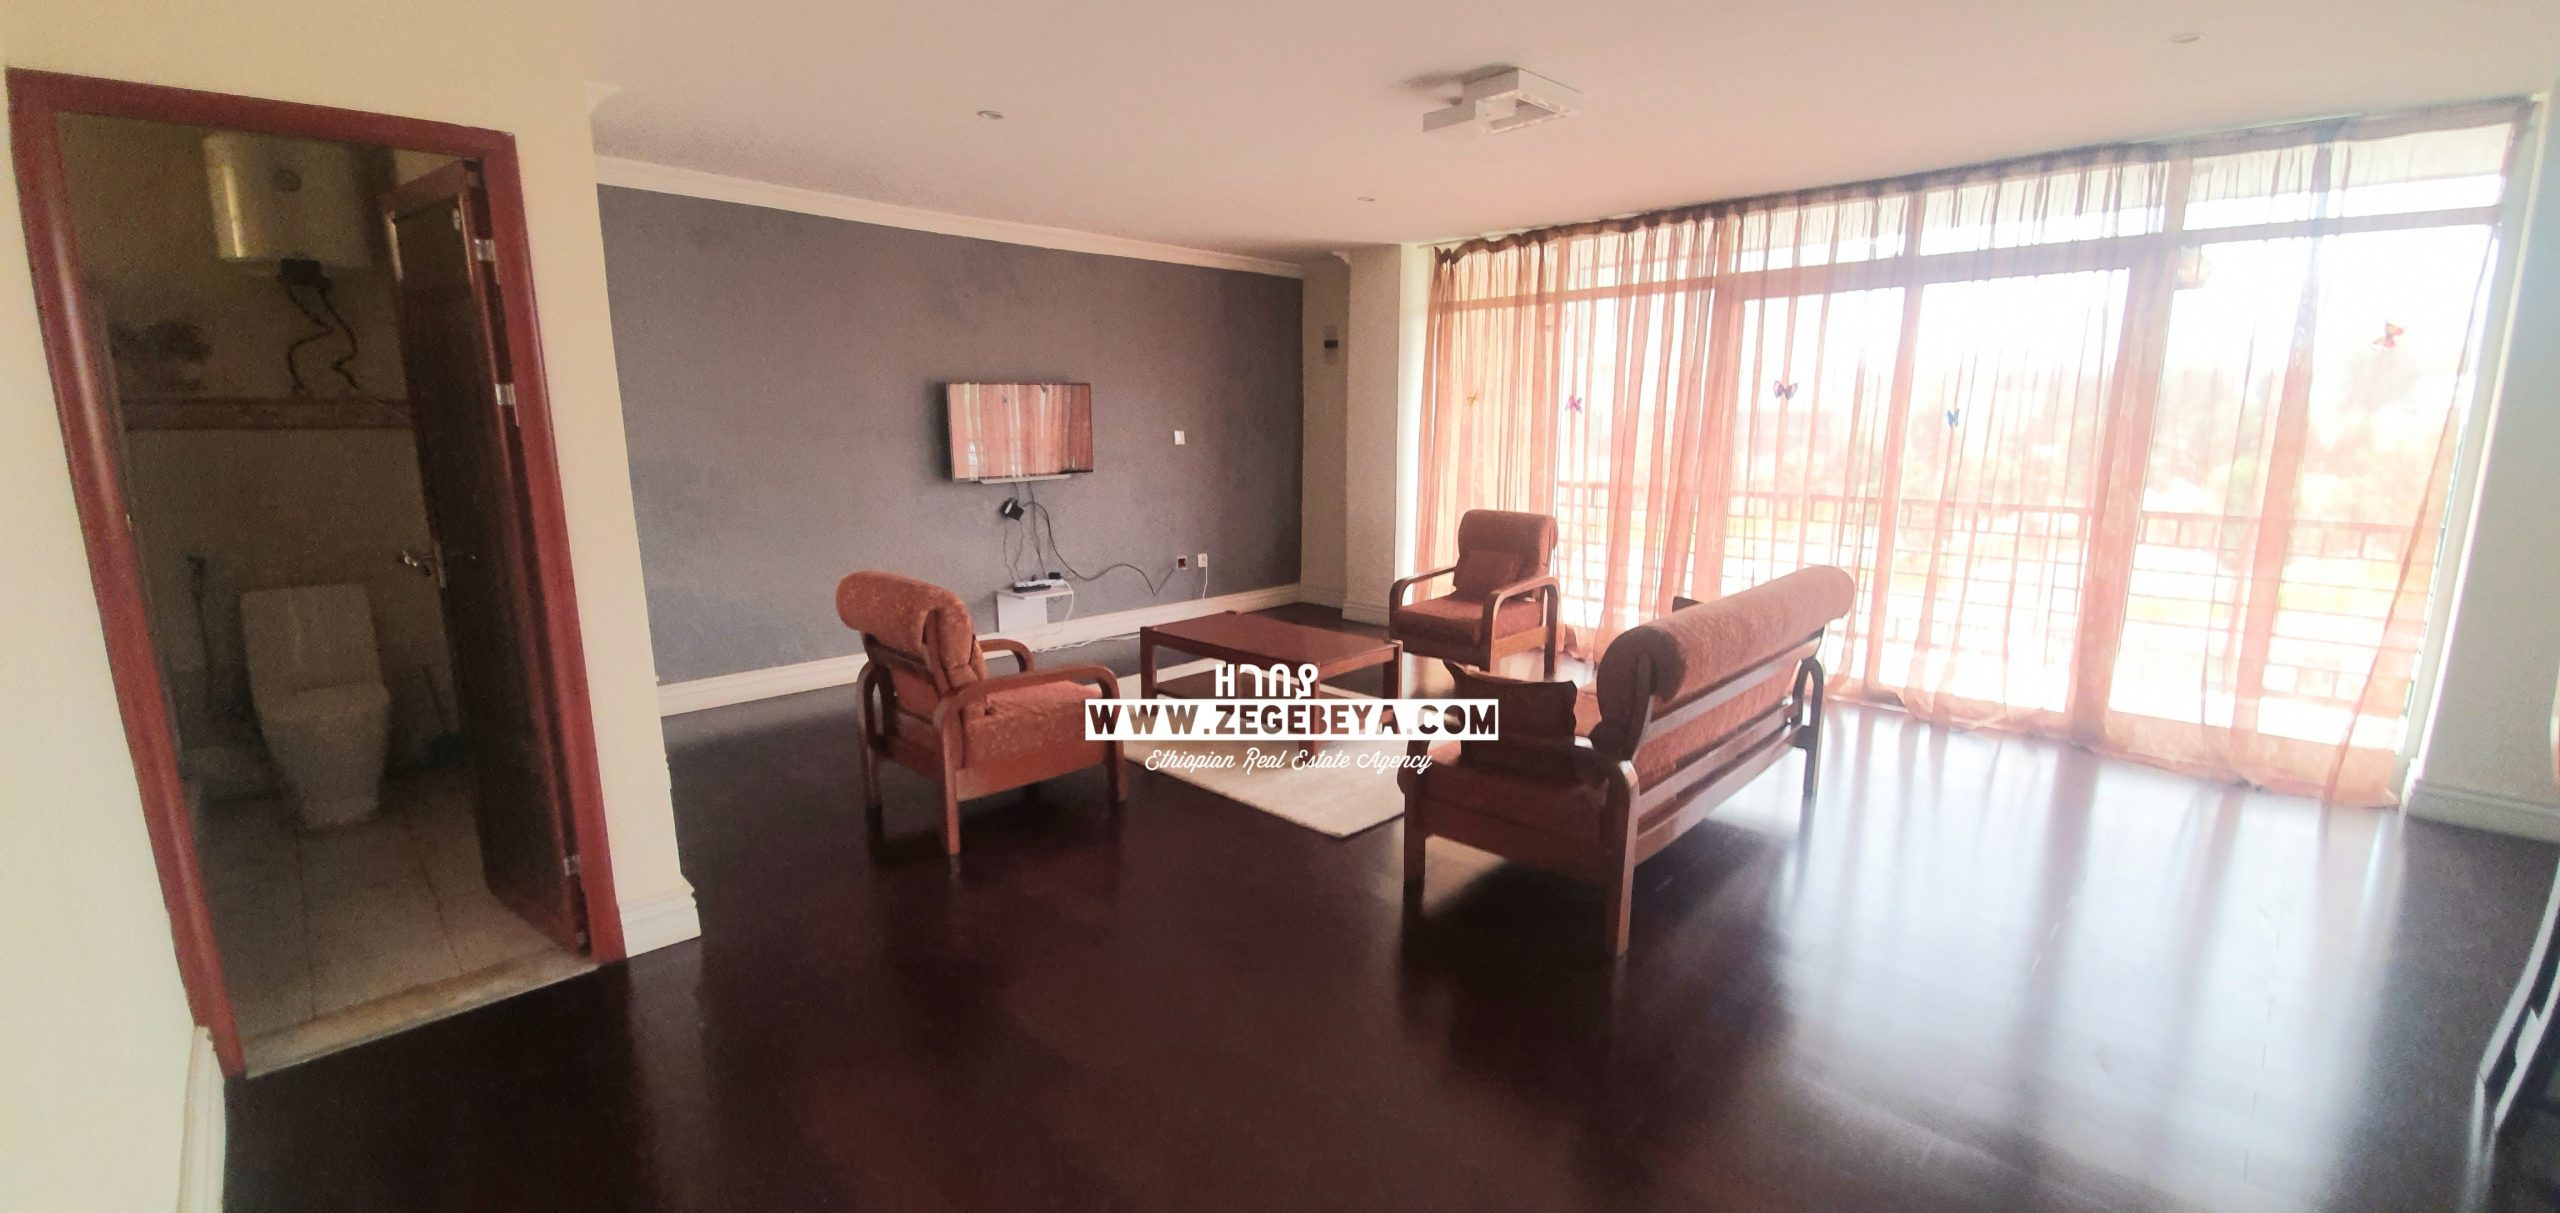 2 Bedroom Furnished Apartment For Rent Near AU